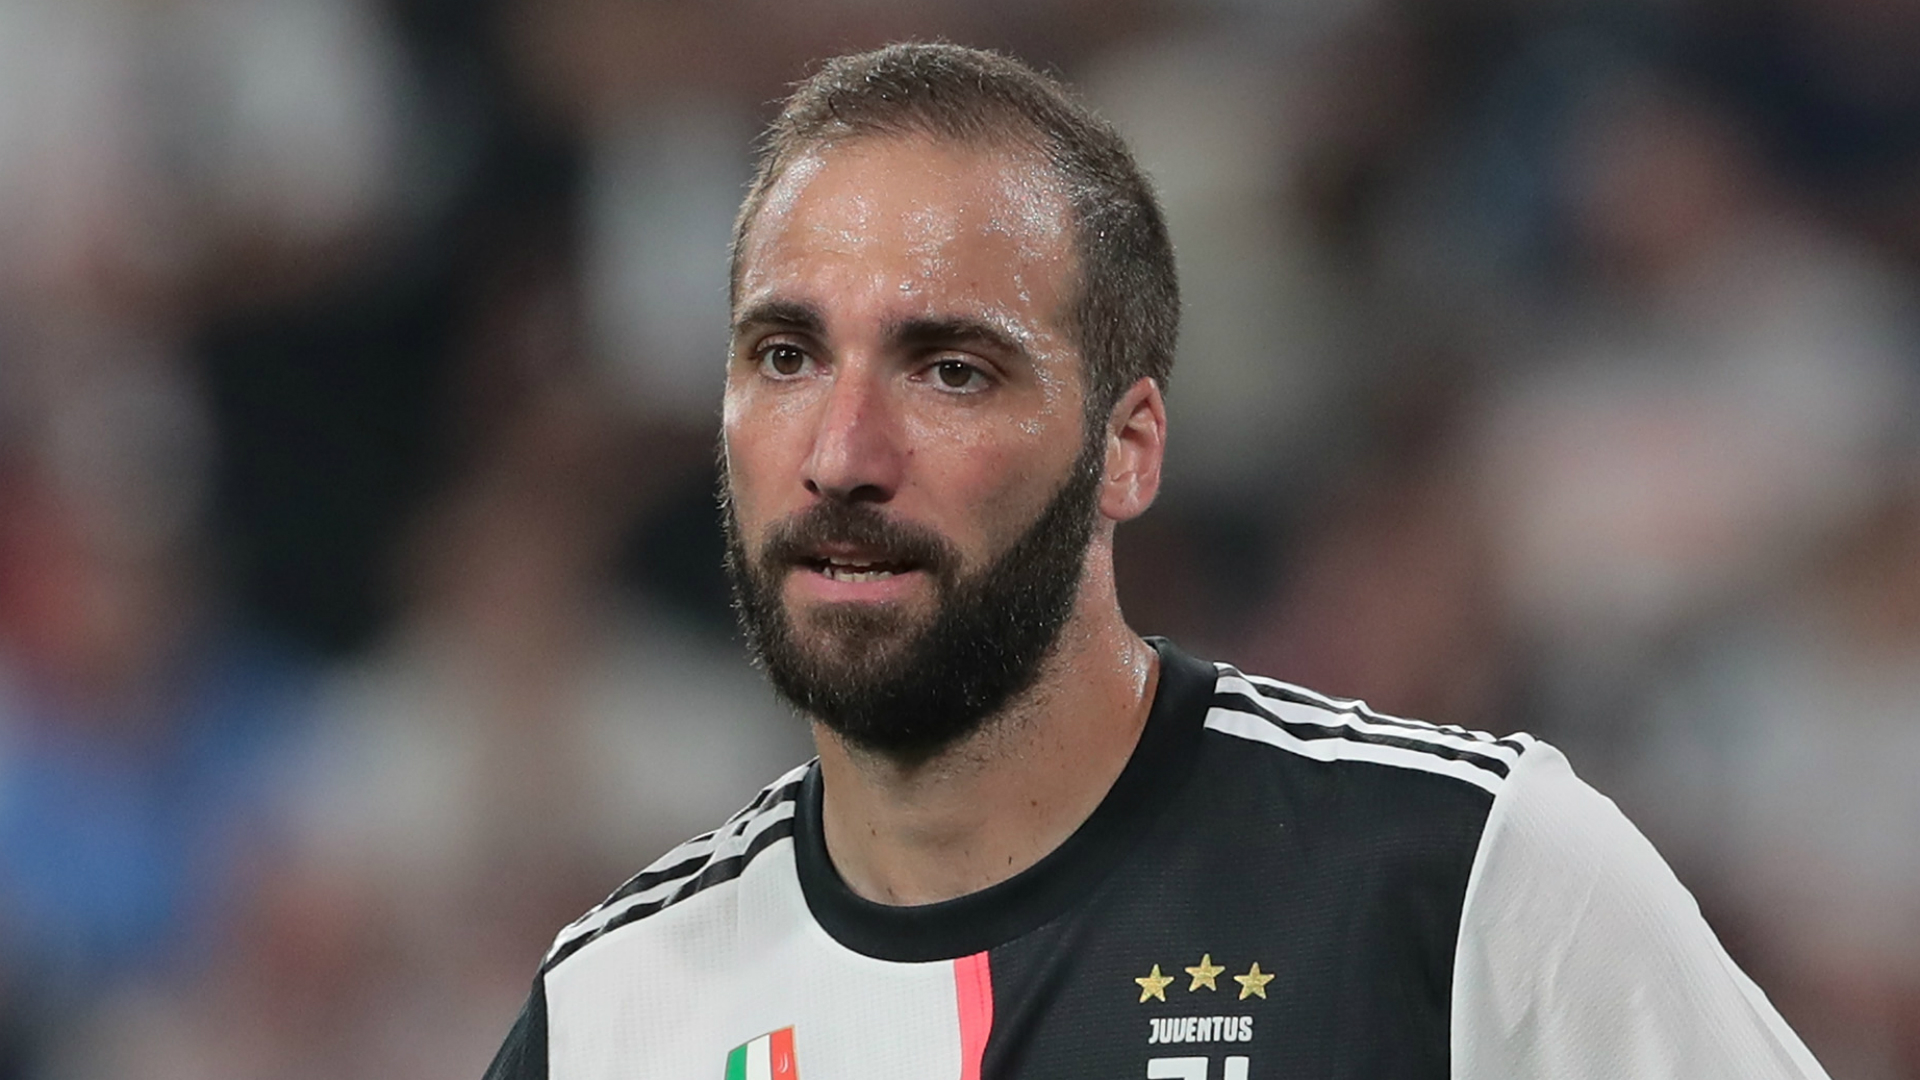 Having been cast aside by both AC Milan and Chelsea last term, striker Gonzalo Higuain is determined to prove himself at Juventus.